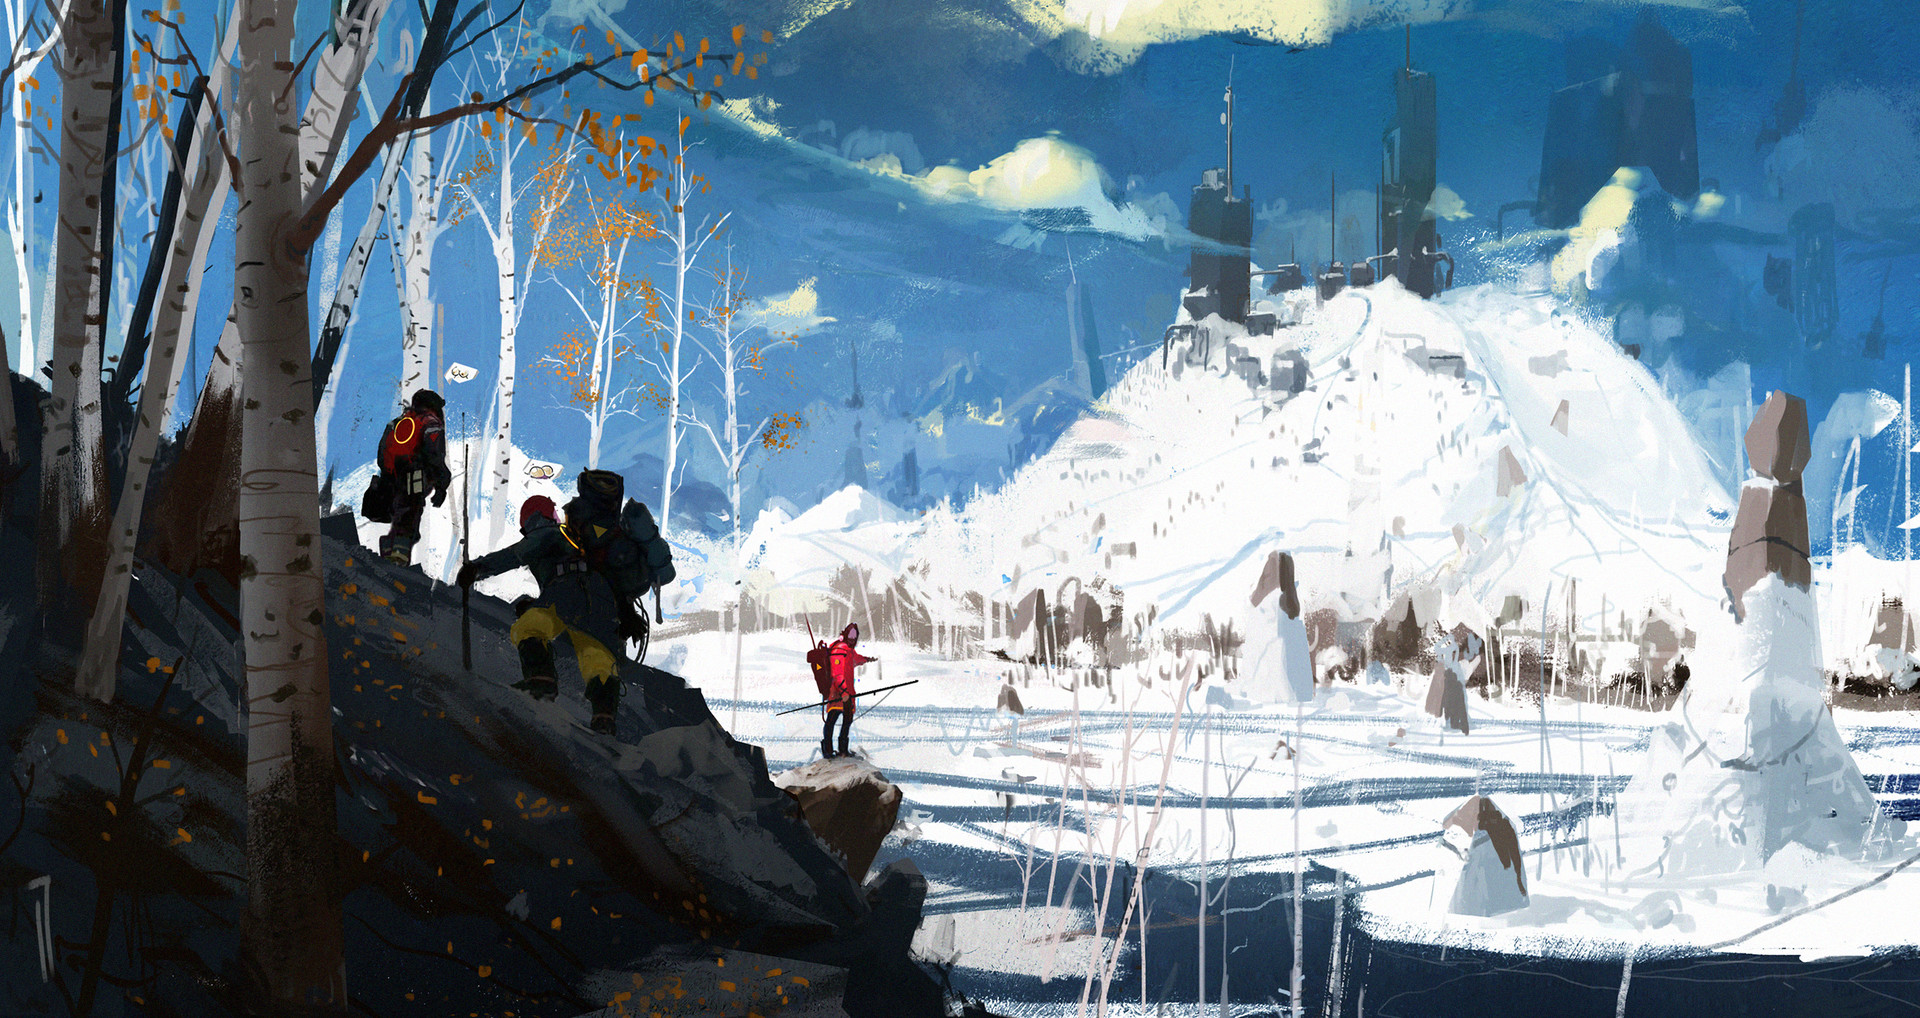 General 1920x1018 Ismail Inceoglu concept art men winter snow people lake trees clothes nature backpacks